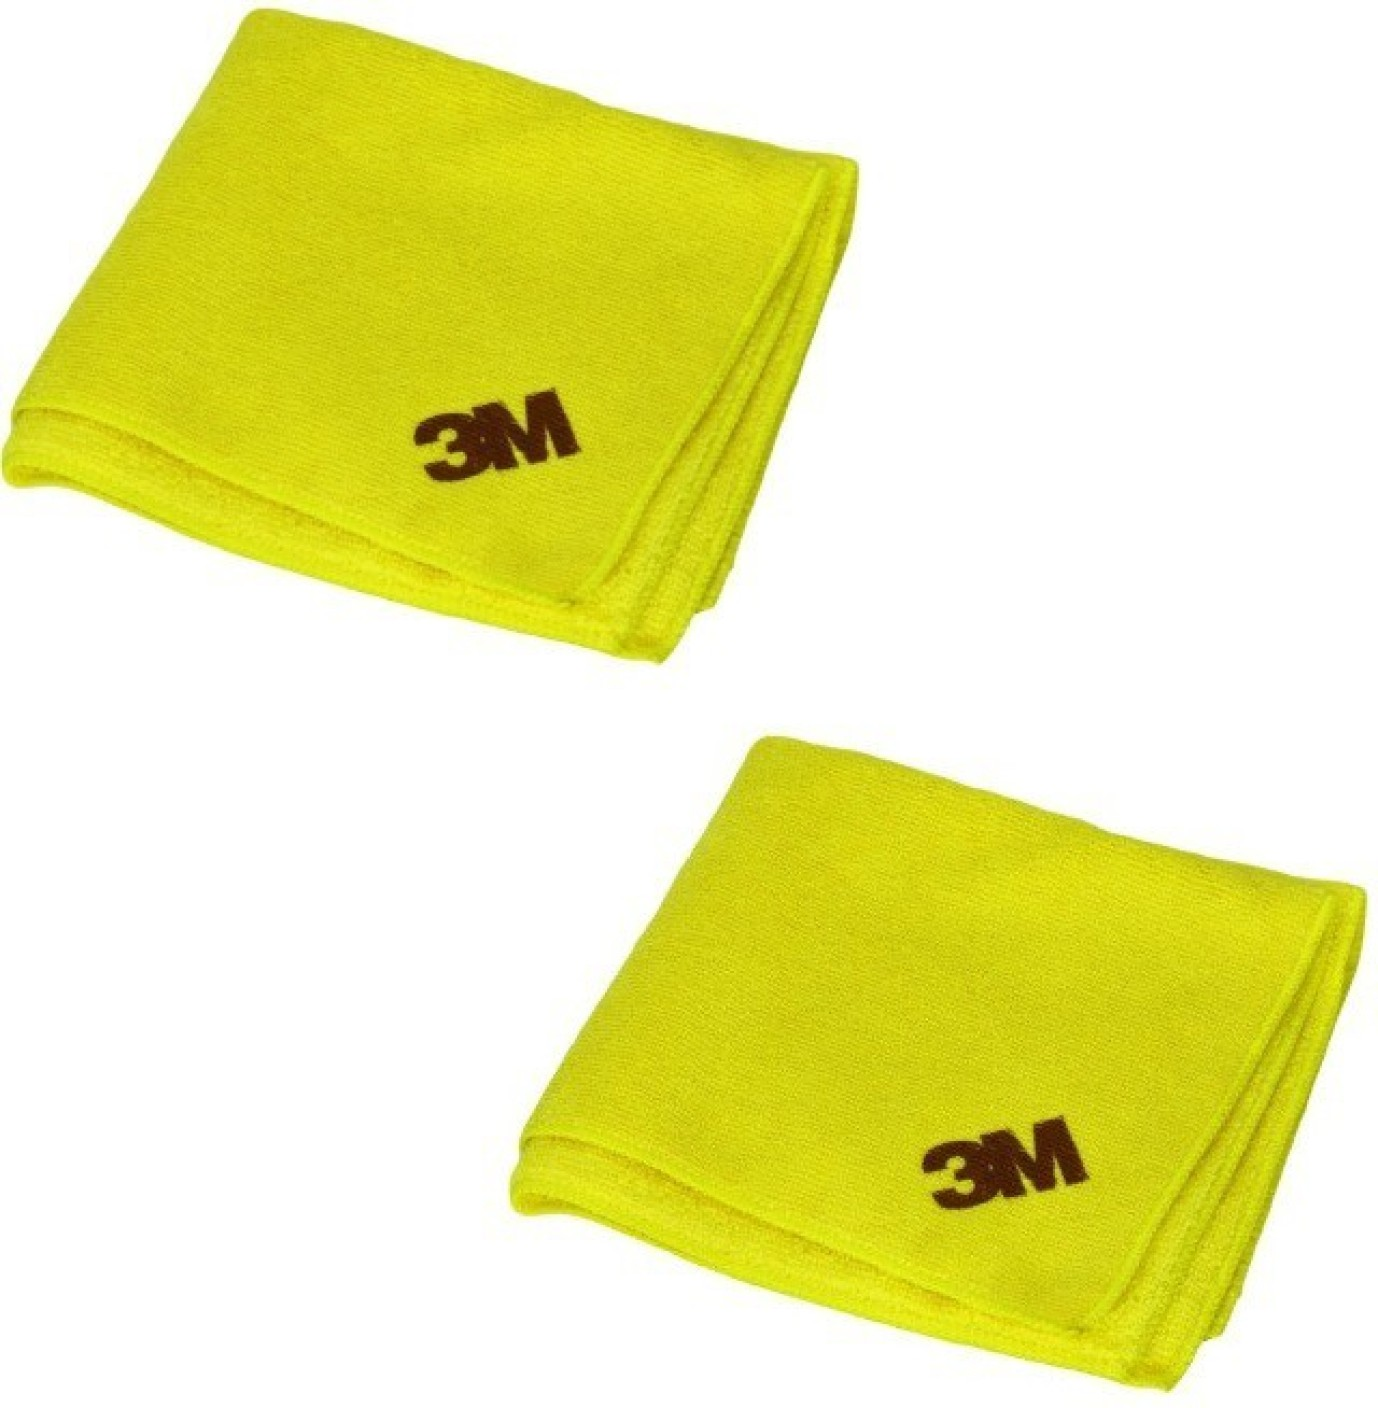 3m Microfiber Cleaning Cloth Price: 3M Microfiber Vehicle Washing Cloth Price In India